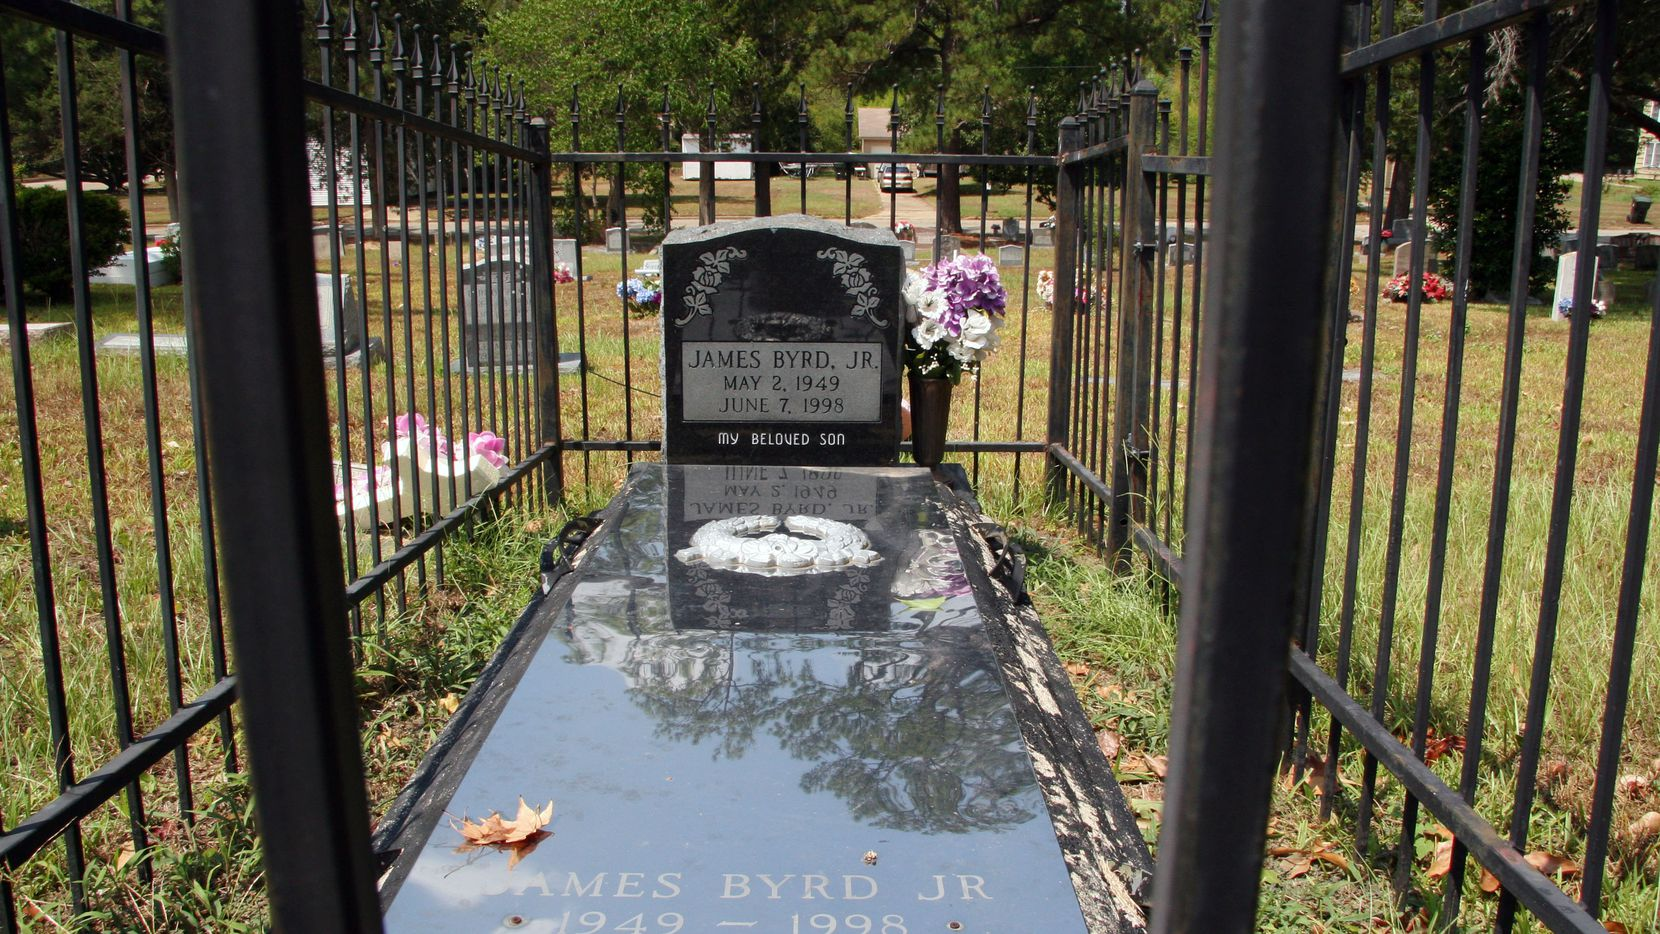 Today marks the 20th anniversary of one of the nation's most horrifying hate crimes — when James Byrd Jr. was dragged from the back of a truck in East Texas by three white men. This photo of Byrd's gravesite was taken in 2011, when one of the men was executed.